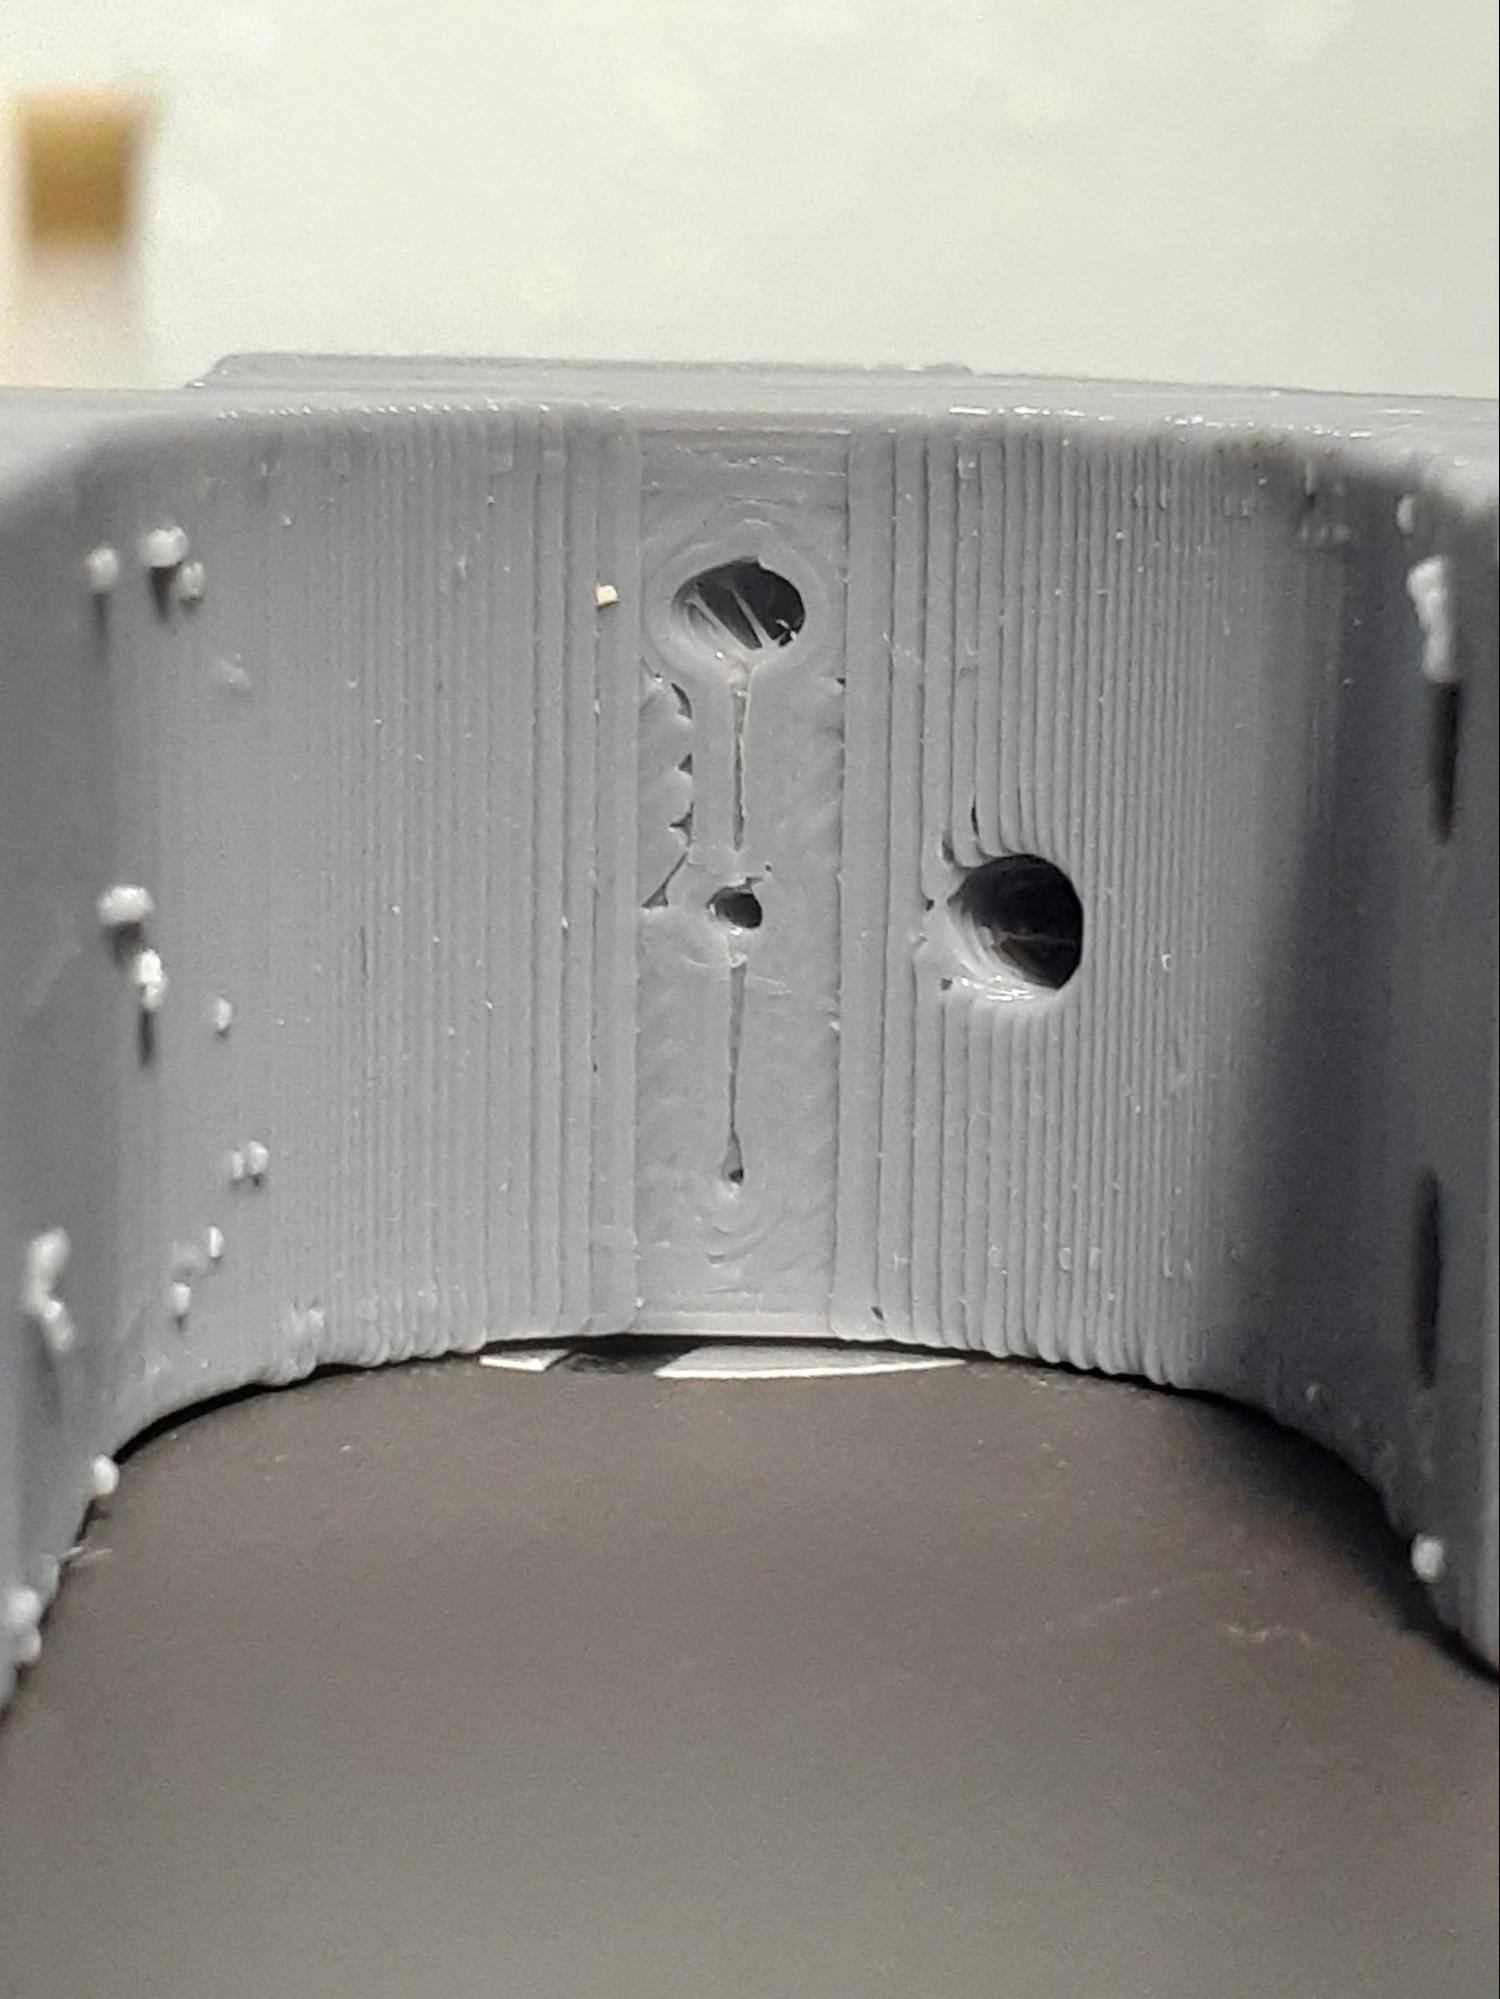 Comparing the different holes on each material from the front along the part's hidden curved surface